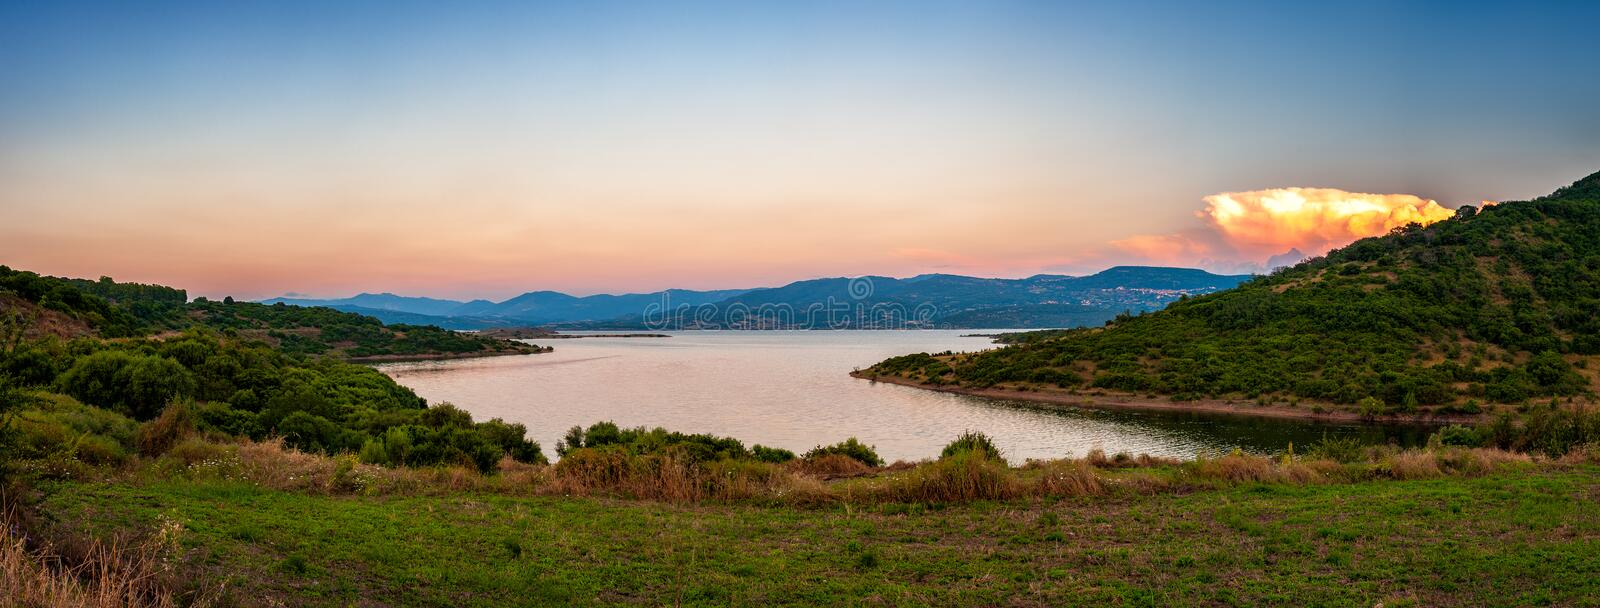 Overview of Lake Omodeo at sunset, Sardinia stock images